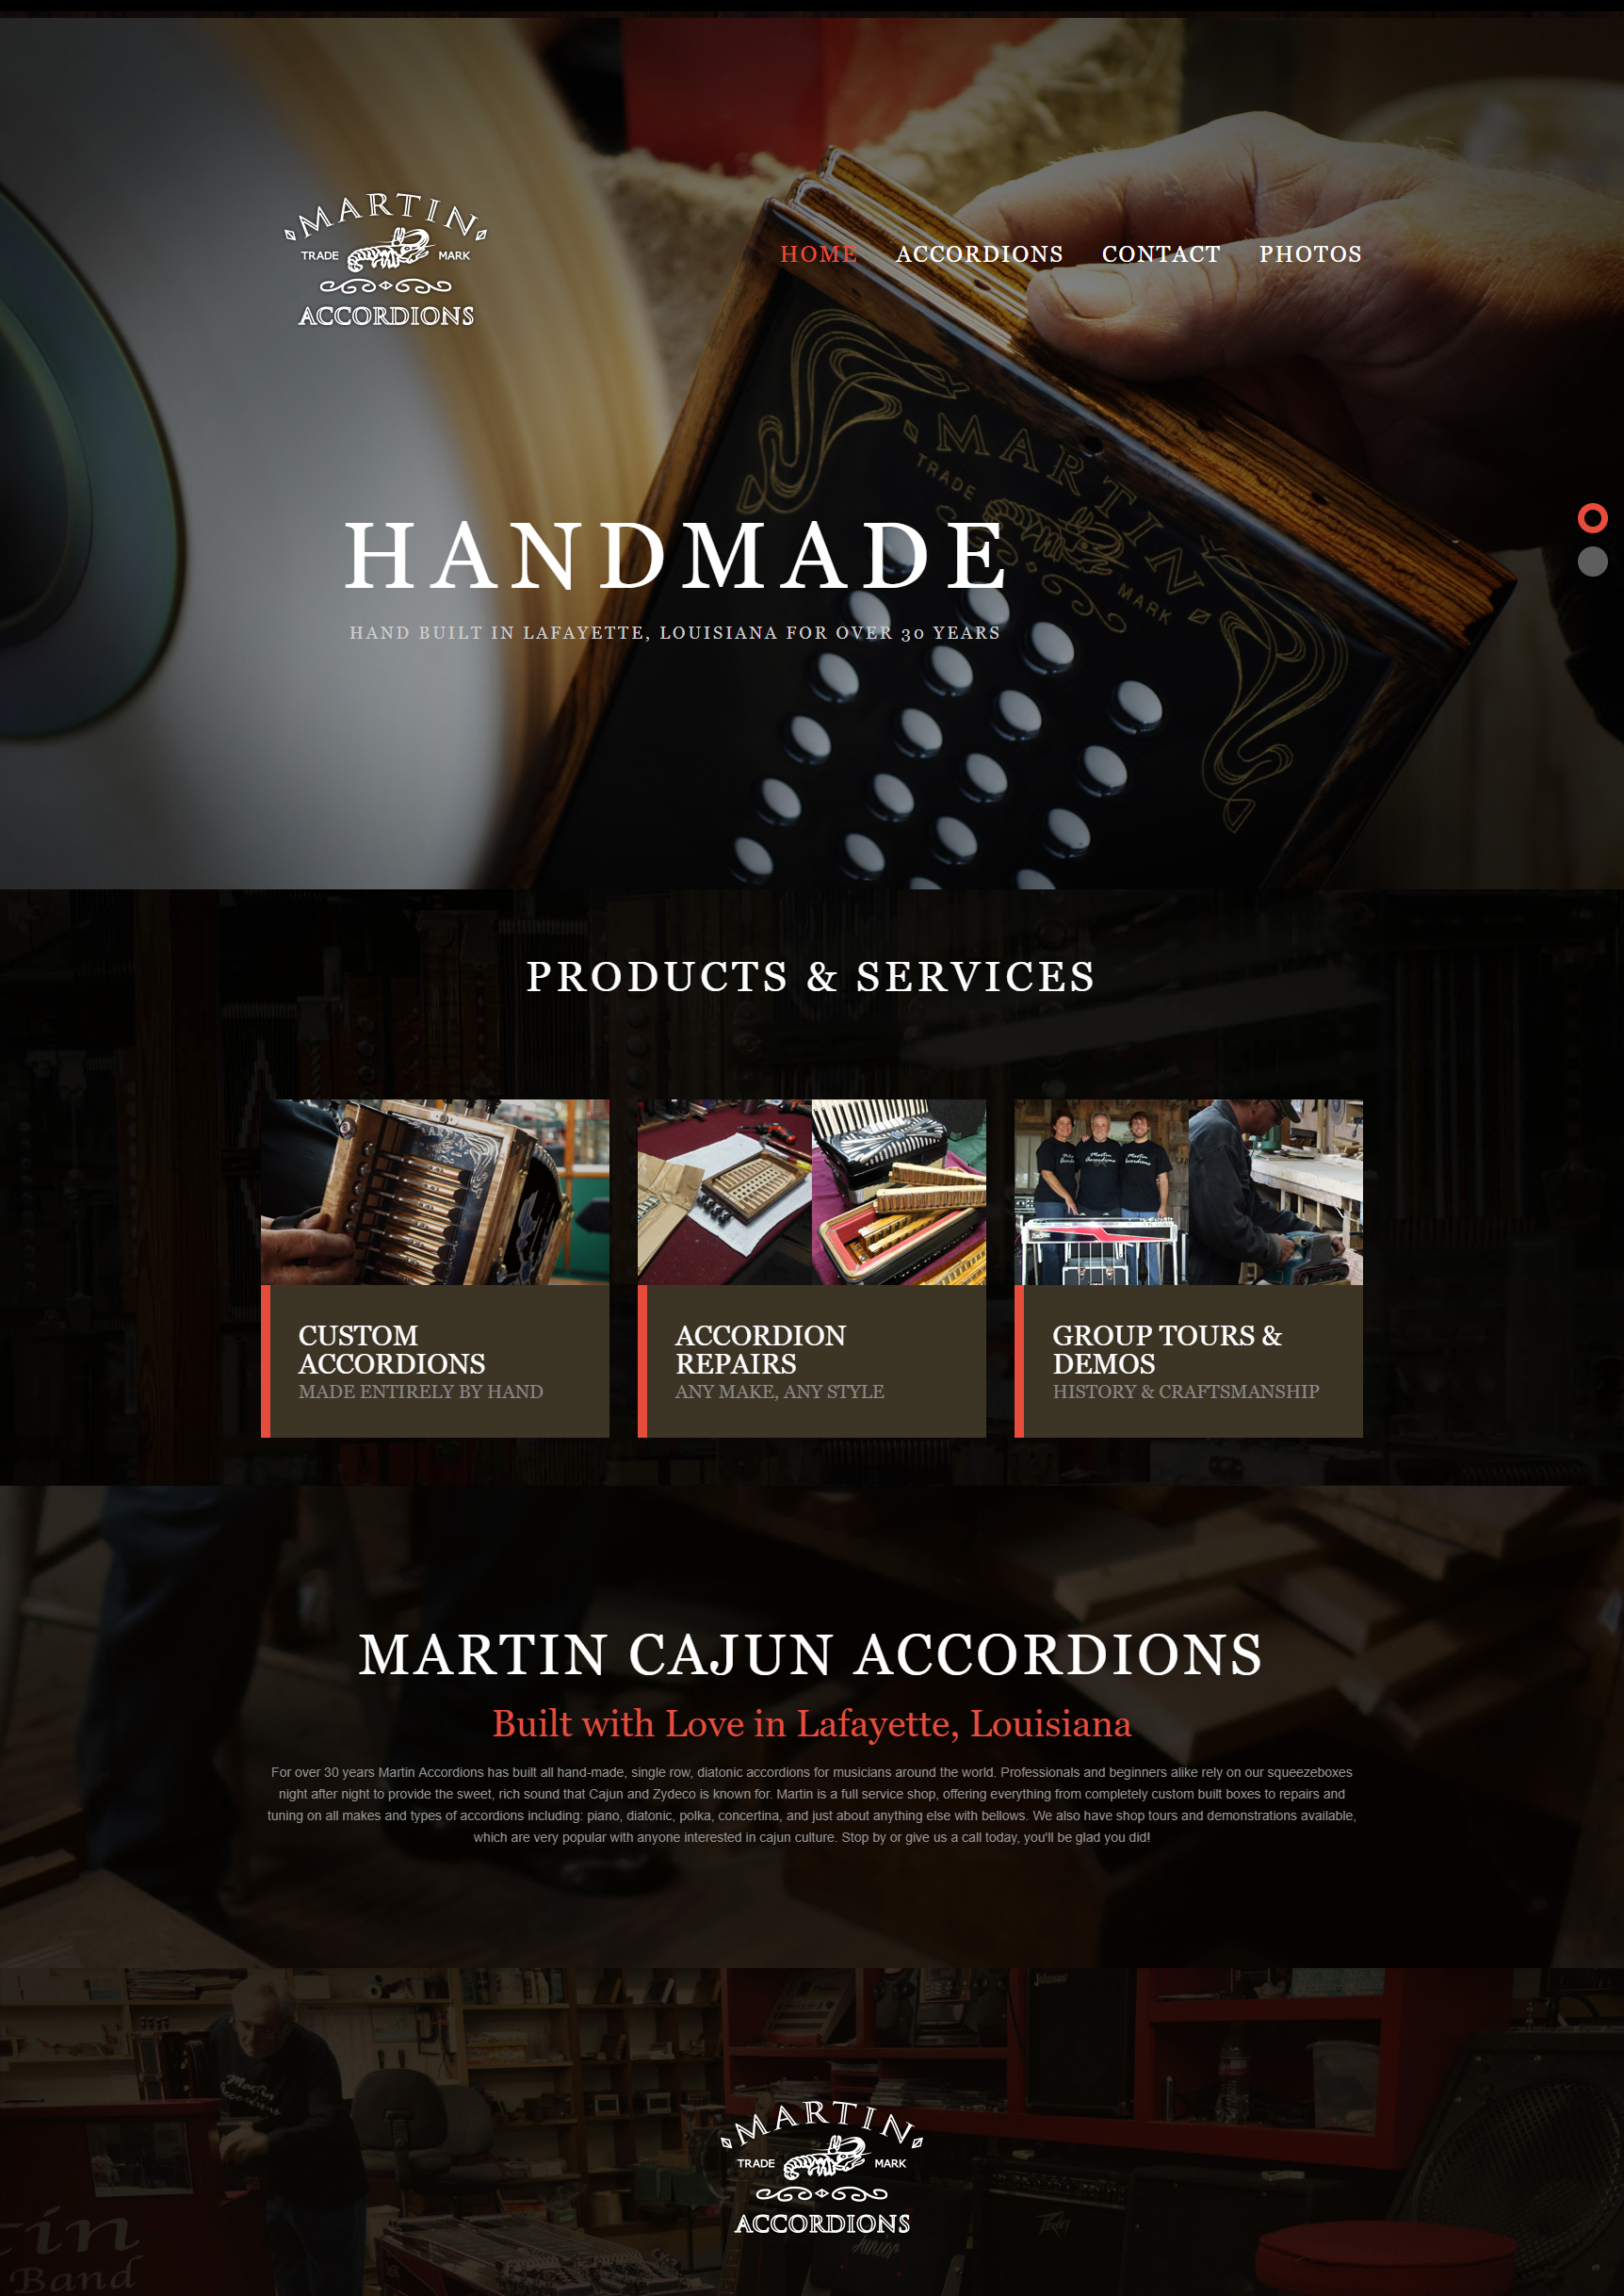 An accordions web design screenshot for a company in Houston TX